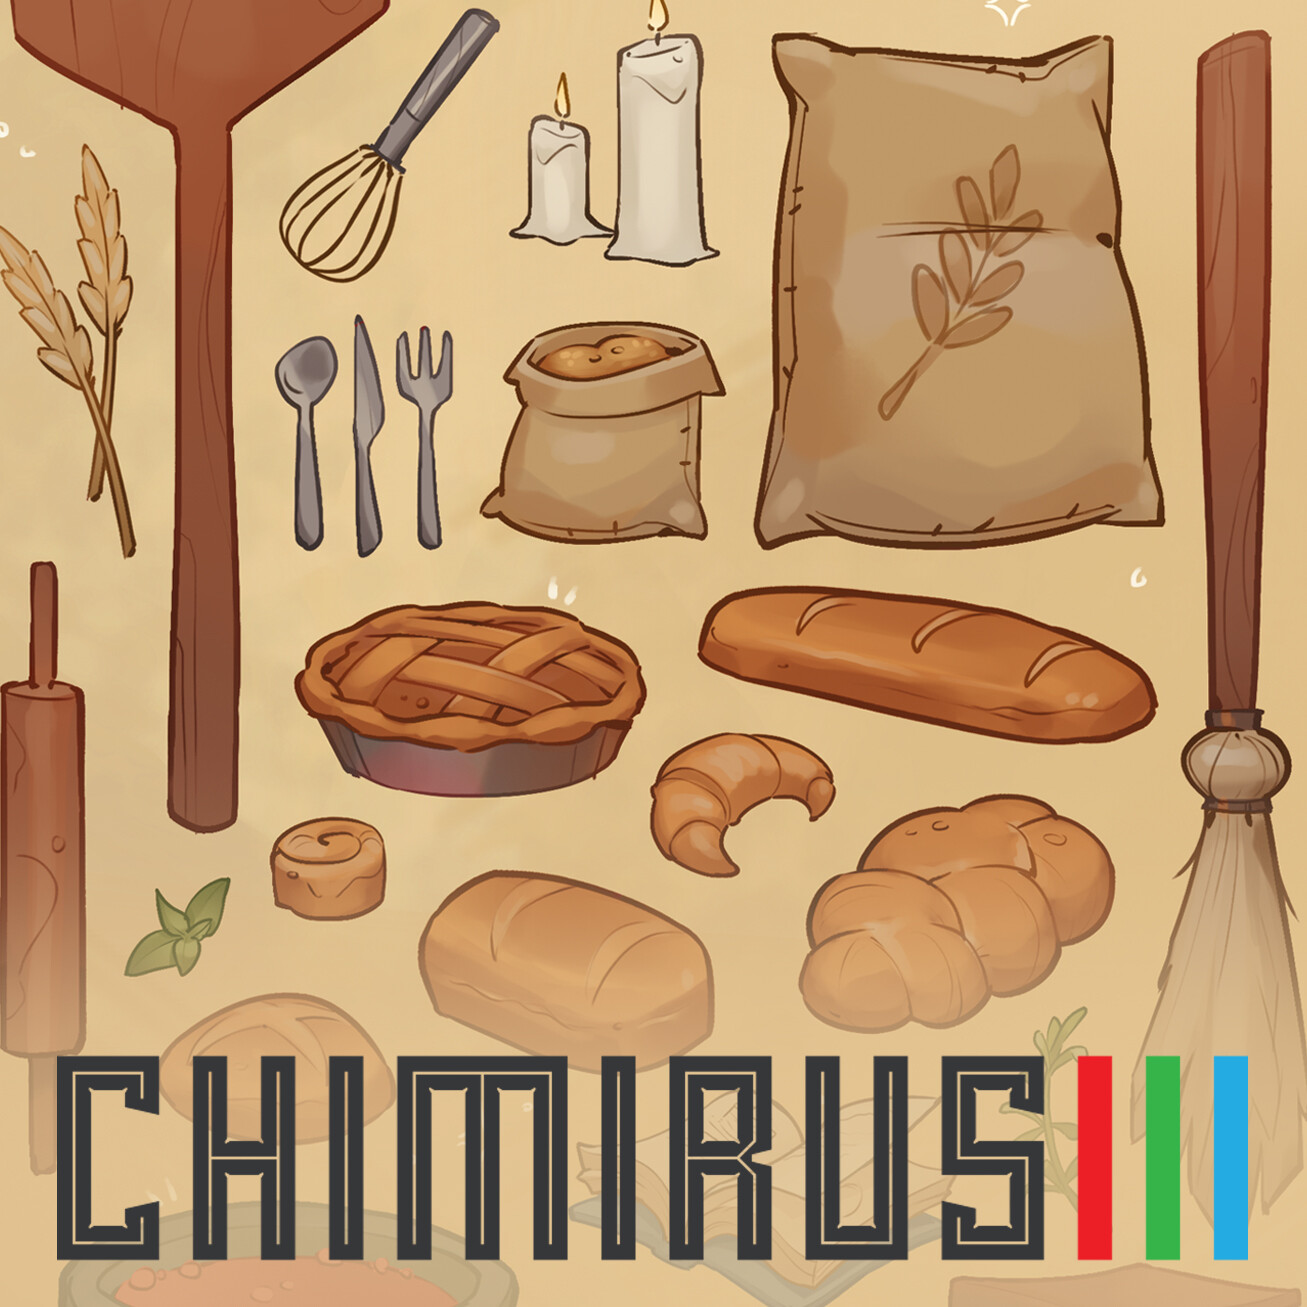 Chimirus Worldbuilding Demo: Madame Renee's Props